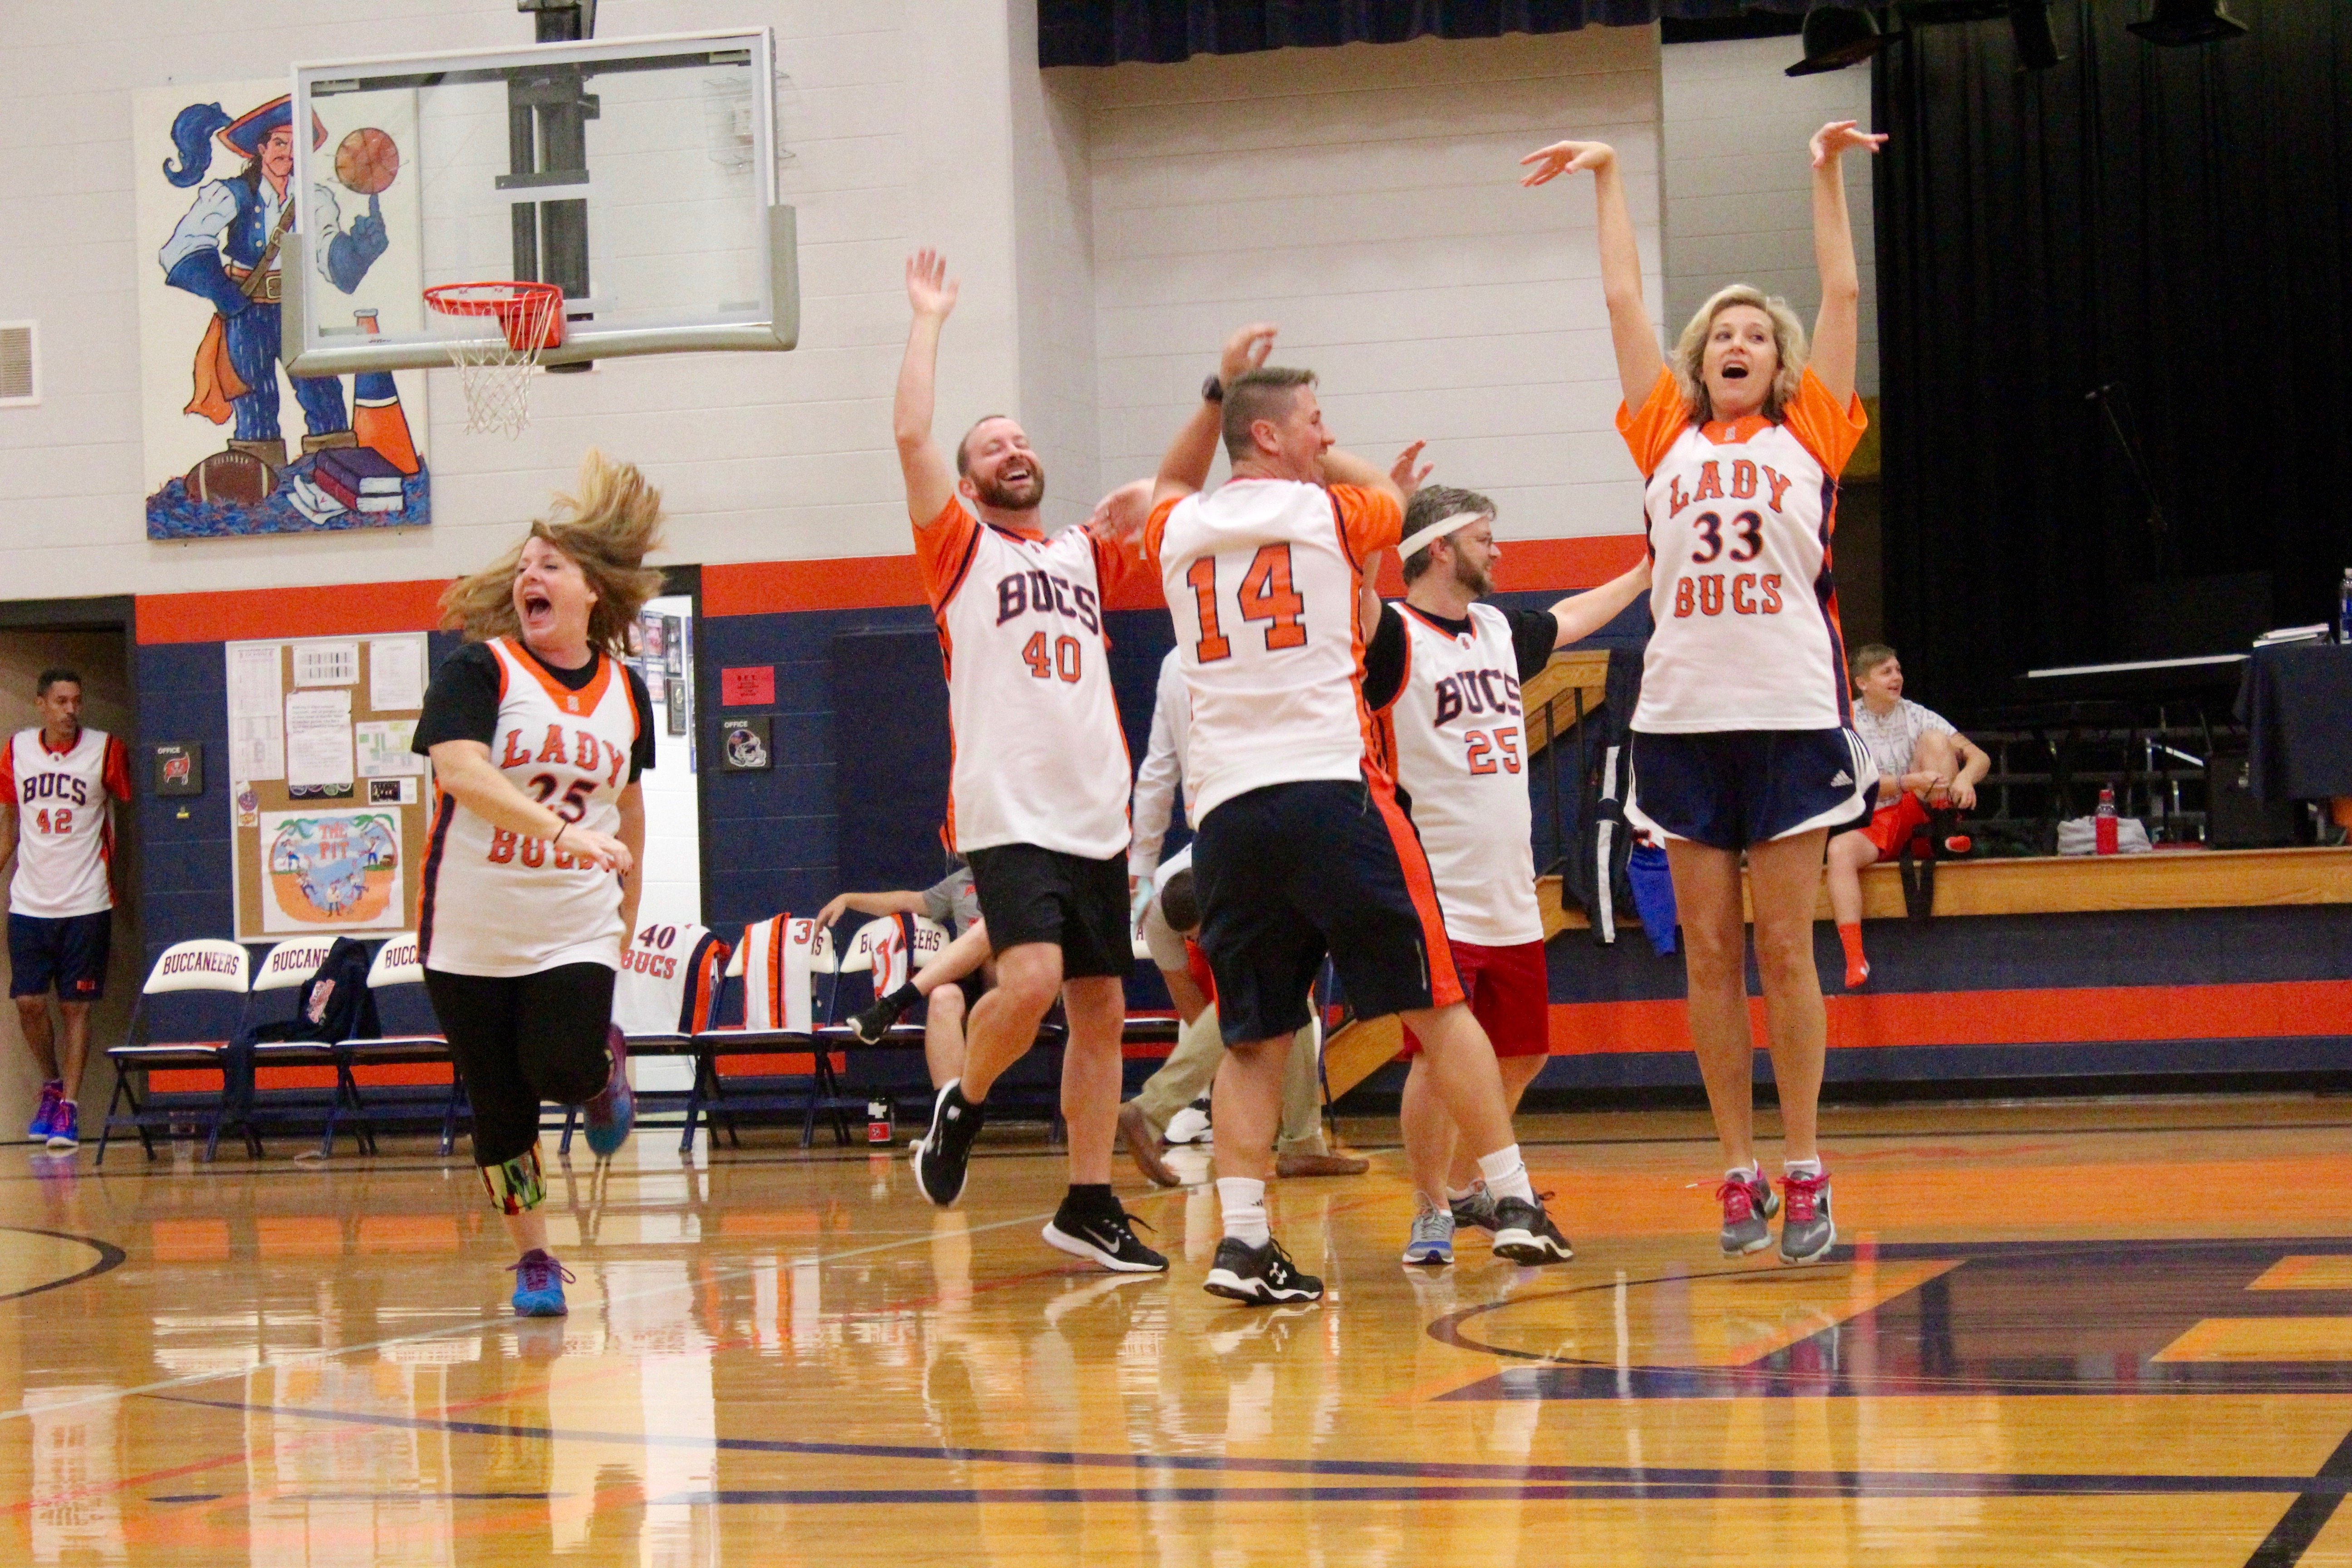 Teachers Celebrate Victory in the Student-Teacher Basketball Game